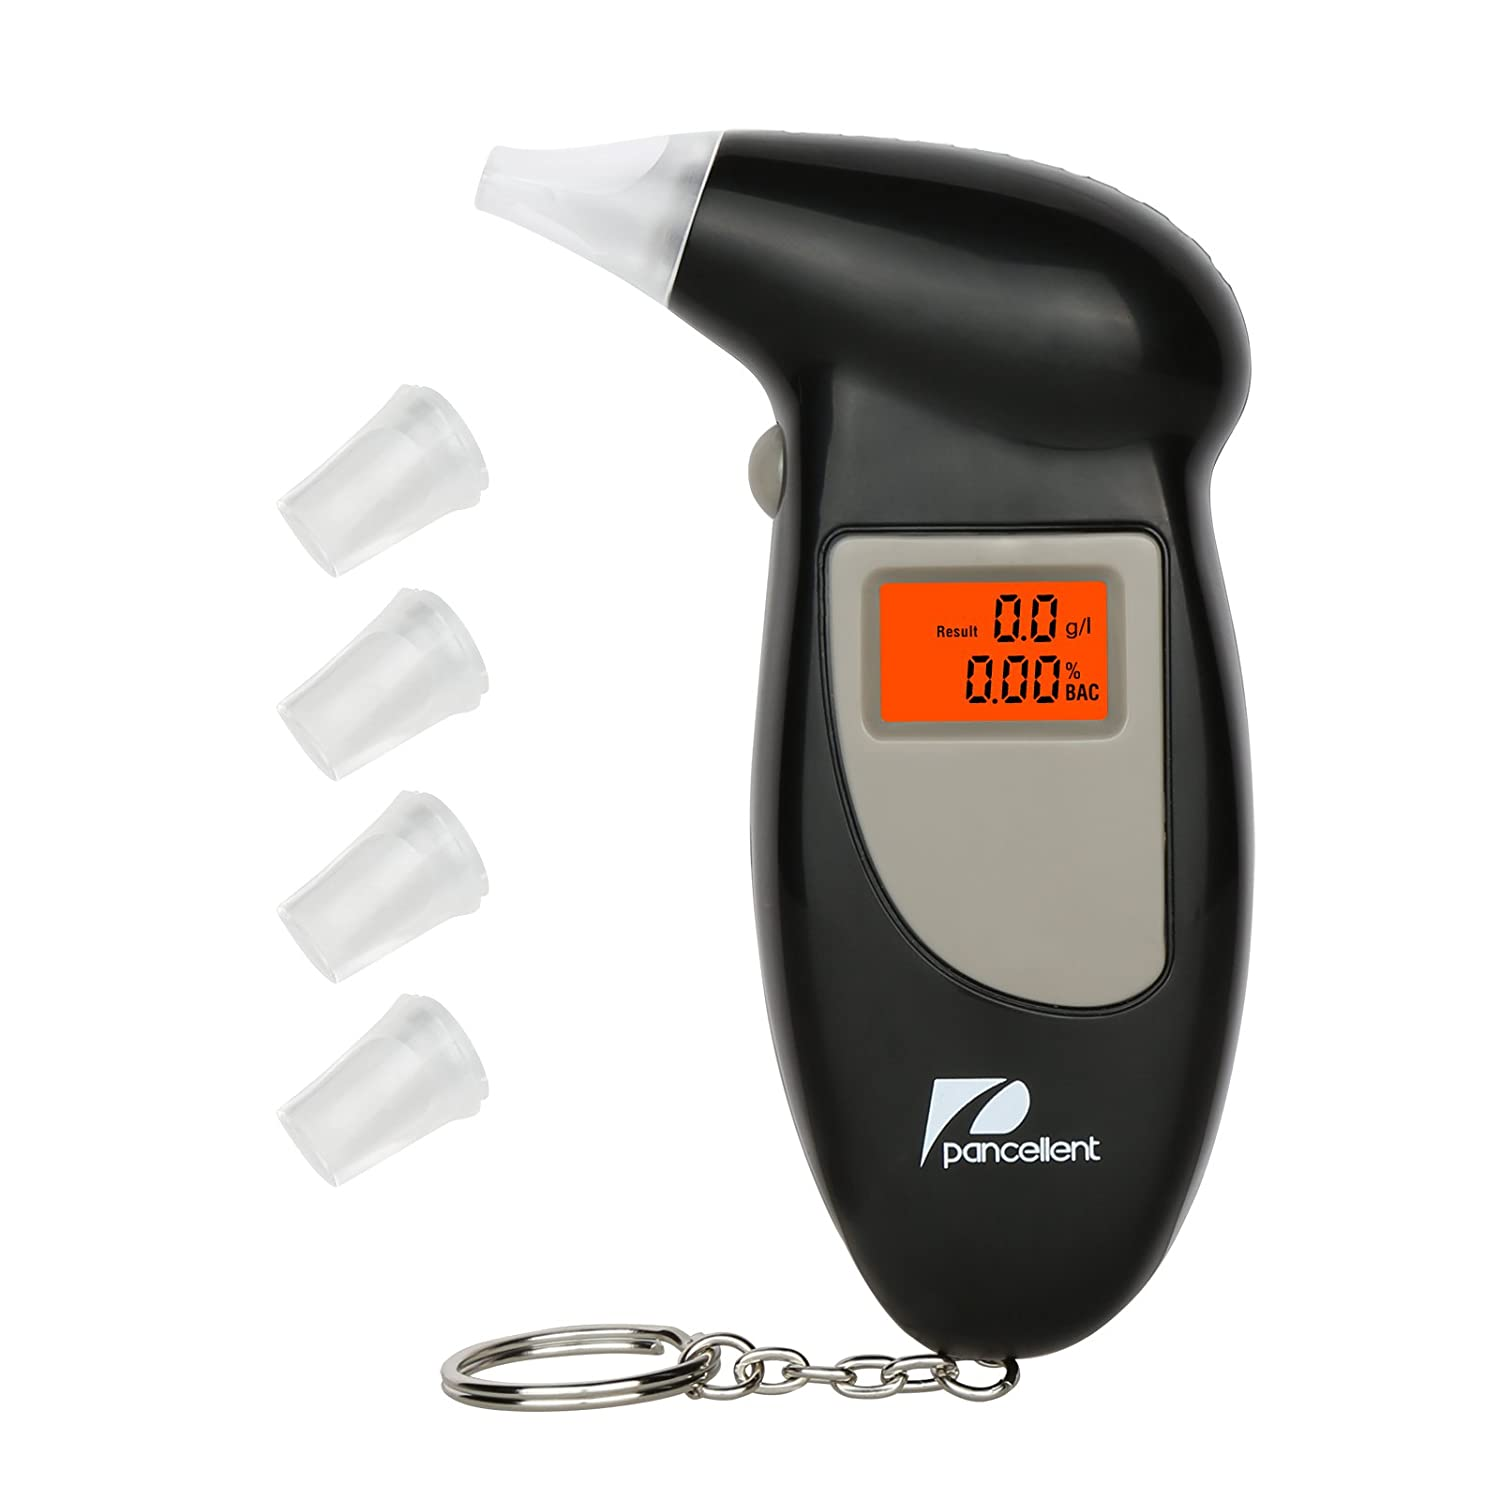 Pancellent Breathalyzer with LCD Display and 5 Mouthpieces Portable Alcohol Tester with Keychain definir la belleza